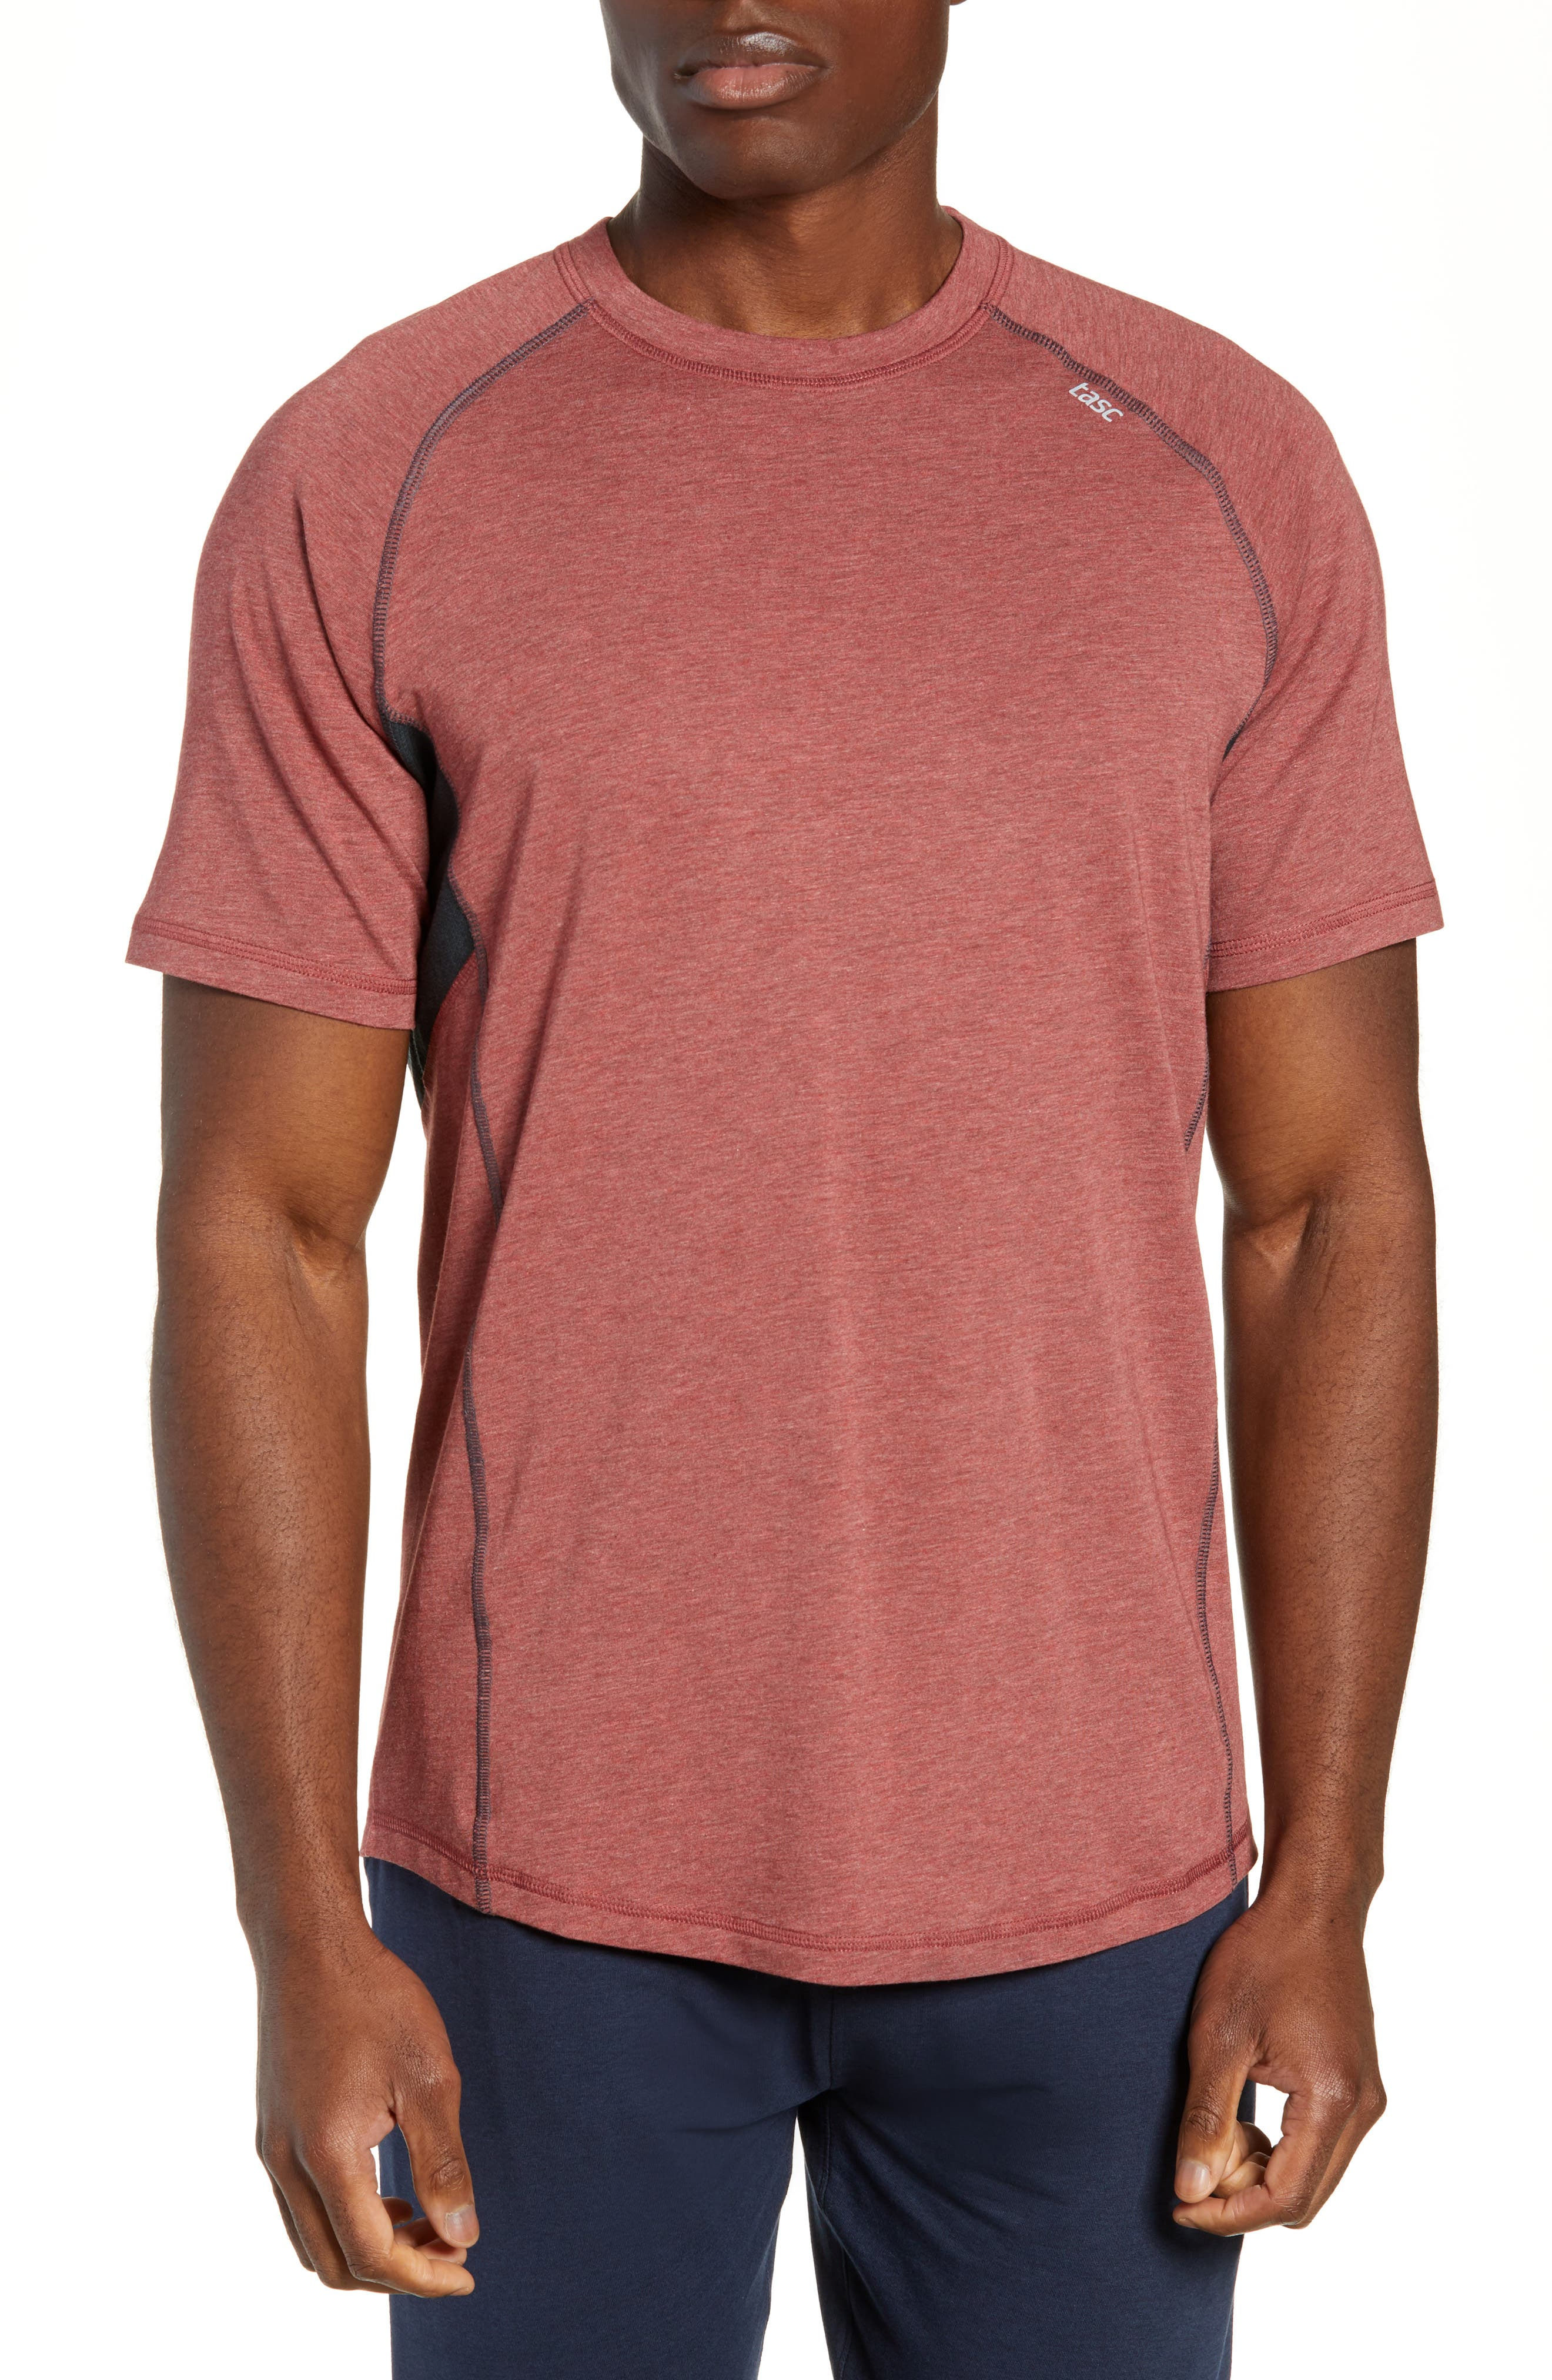 Tasc Performance Charge Ii T-Shirt, Red